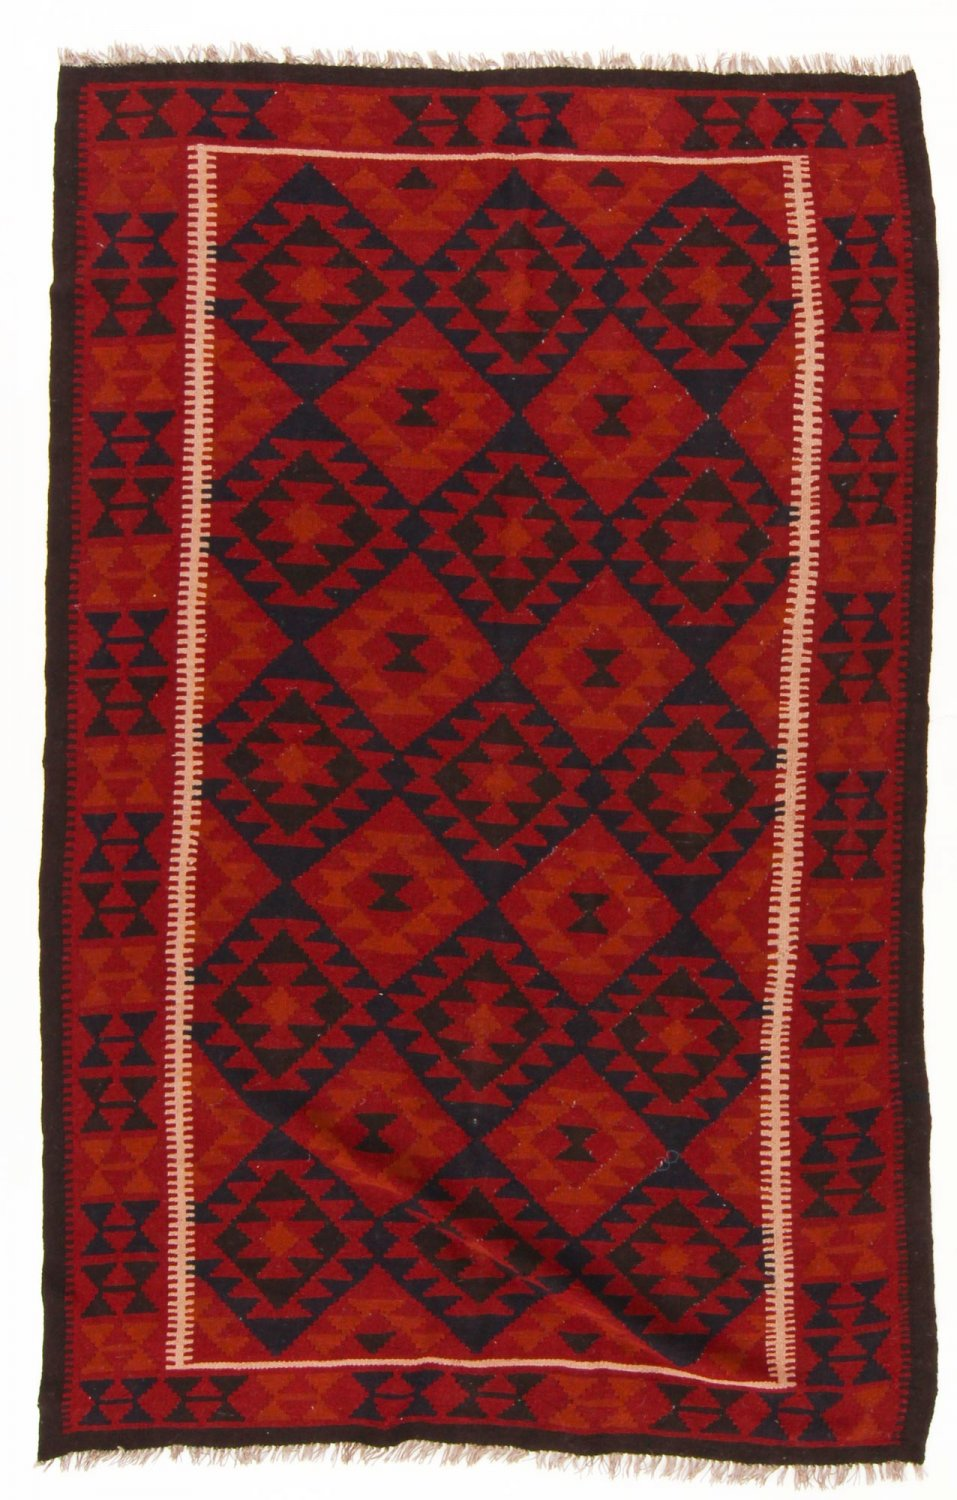 kilim rug afghan 250 x 150 cm afghanistan rugs. Black Bedroom Furniture Sets. Home Design Ideas